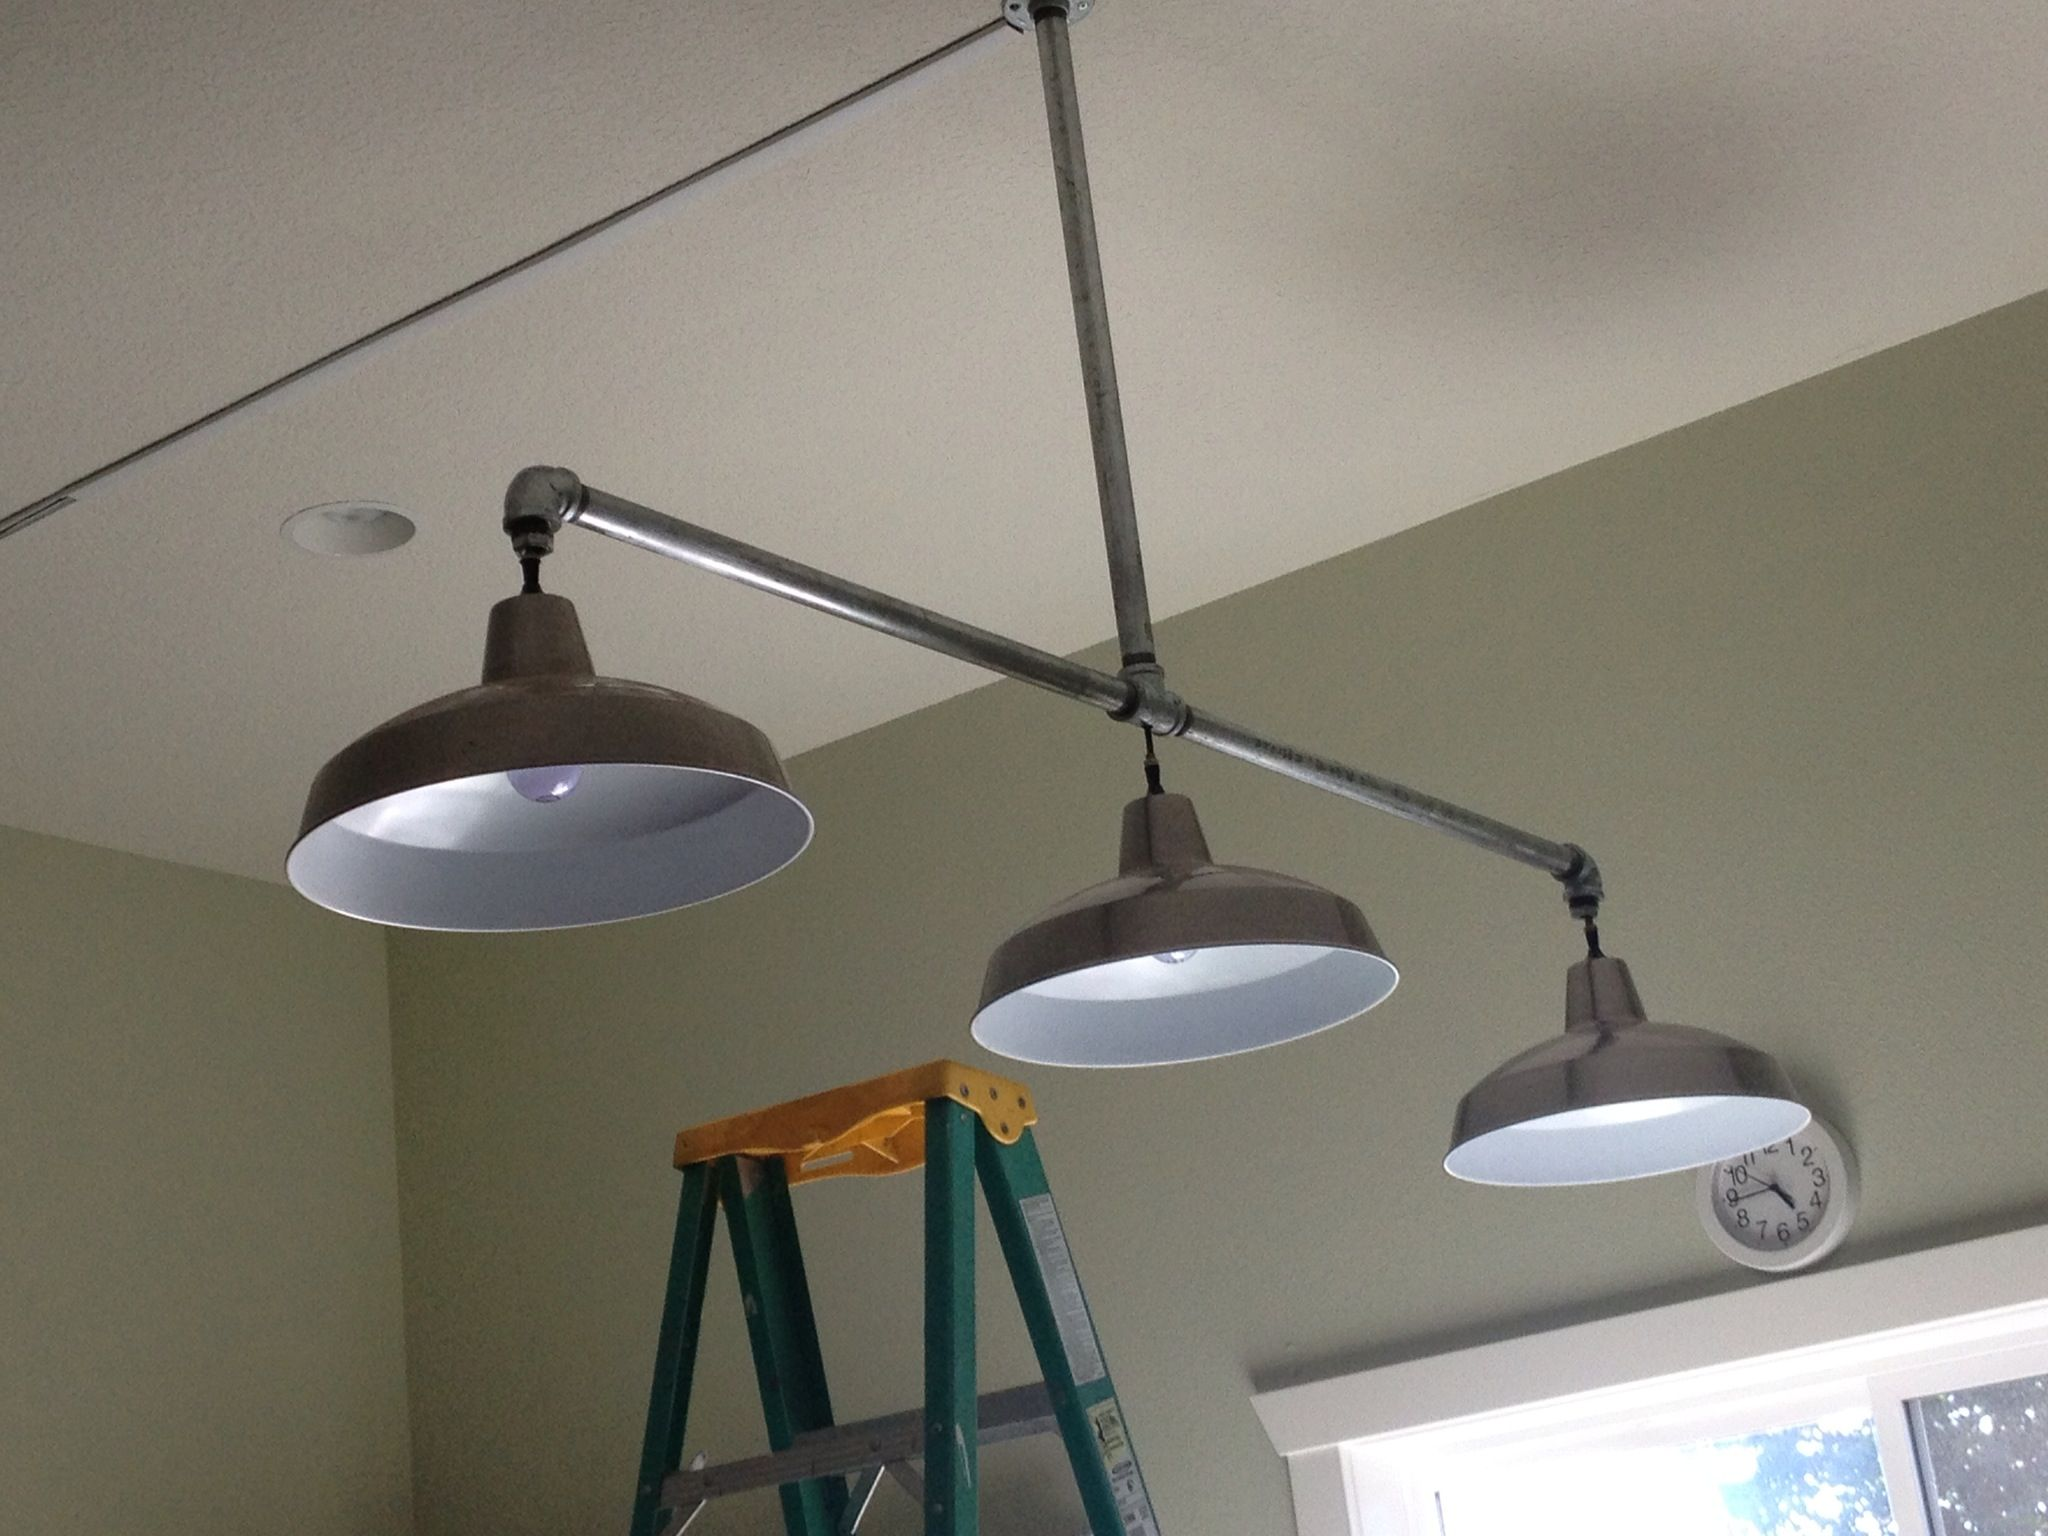 New lights hubby made for craft room Galvanized pipe from Lowes